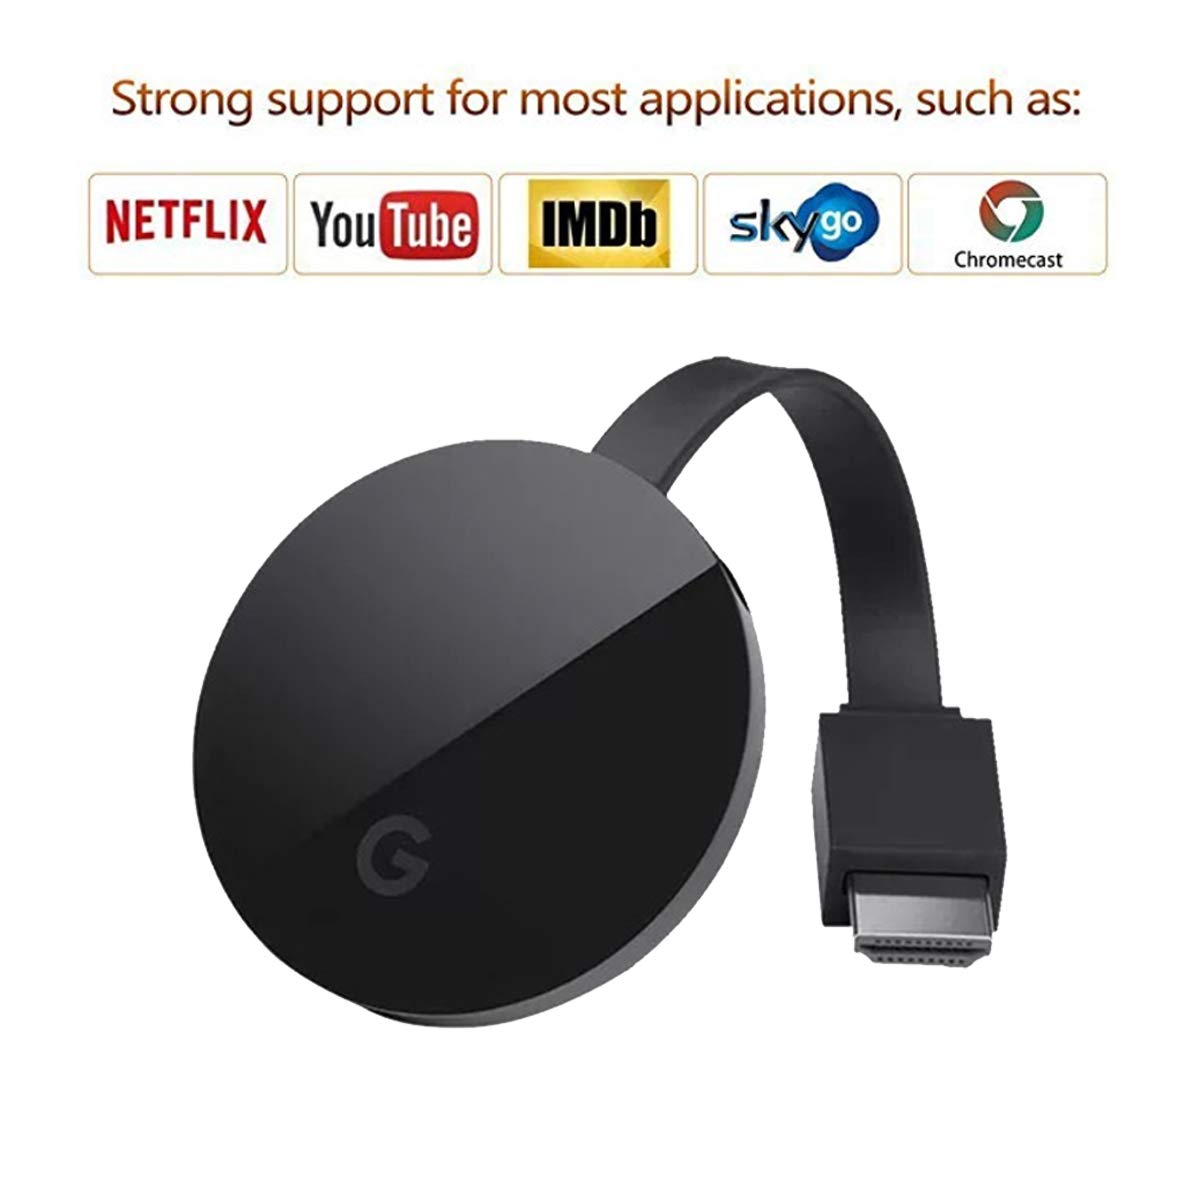 Phaden Miracast Wireless Display Receiver 1080p Hdmi Electrical Wire Pull Youtube Wifi Media Streamer Adapter Support Chromecast Netflix Hulu Plus Airplay Dlna Tv